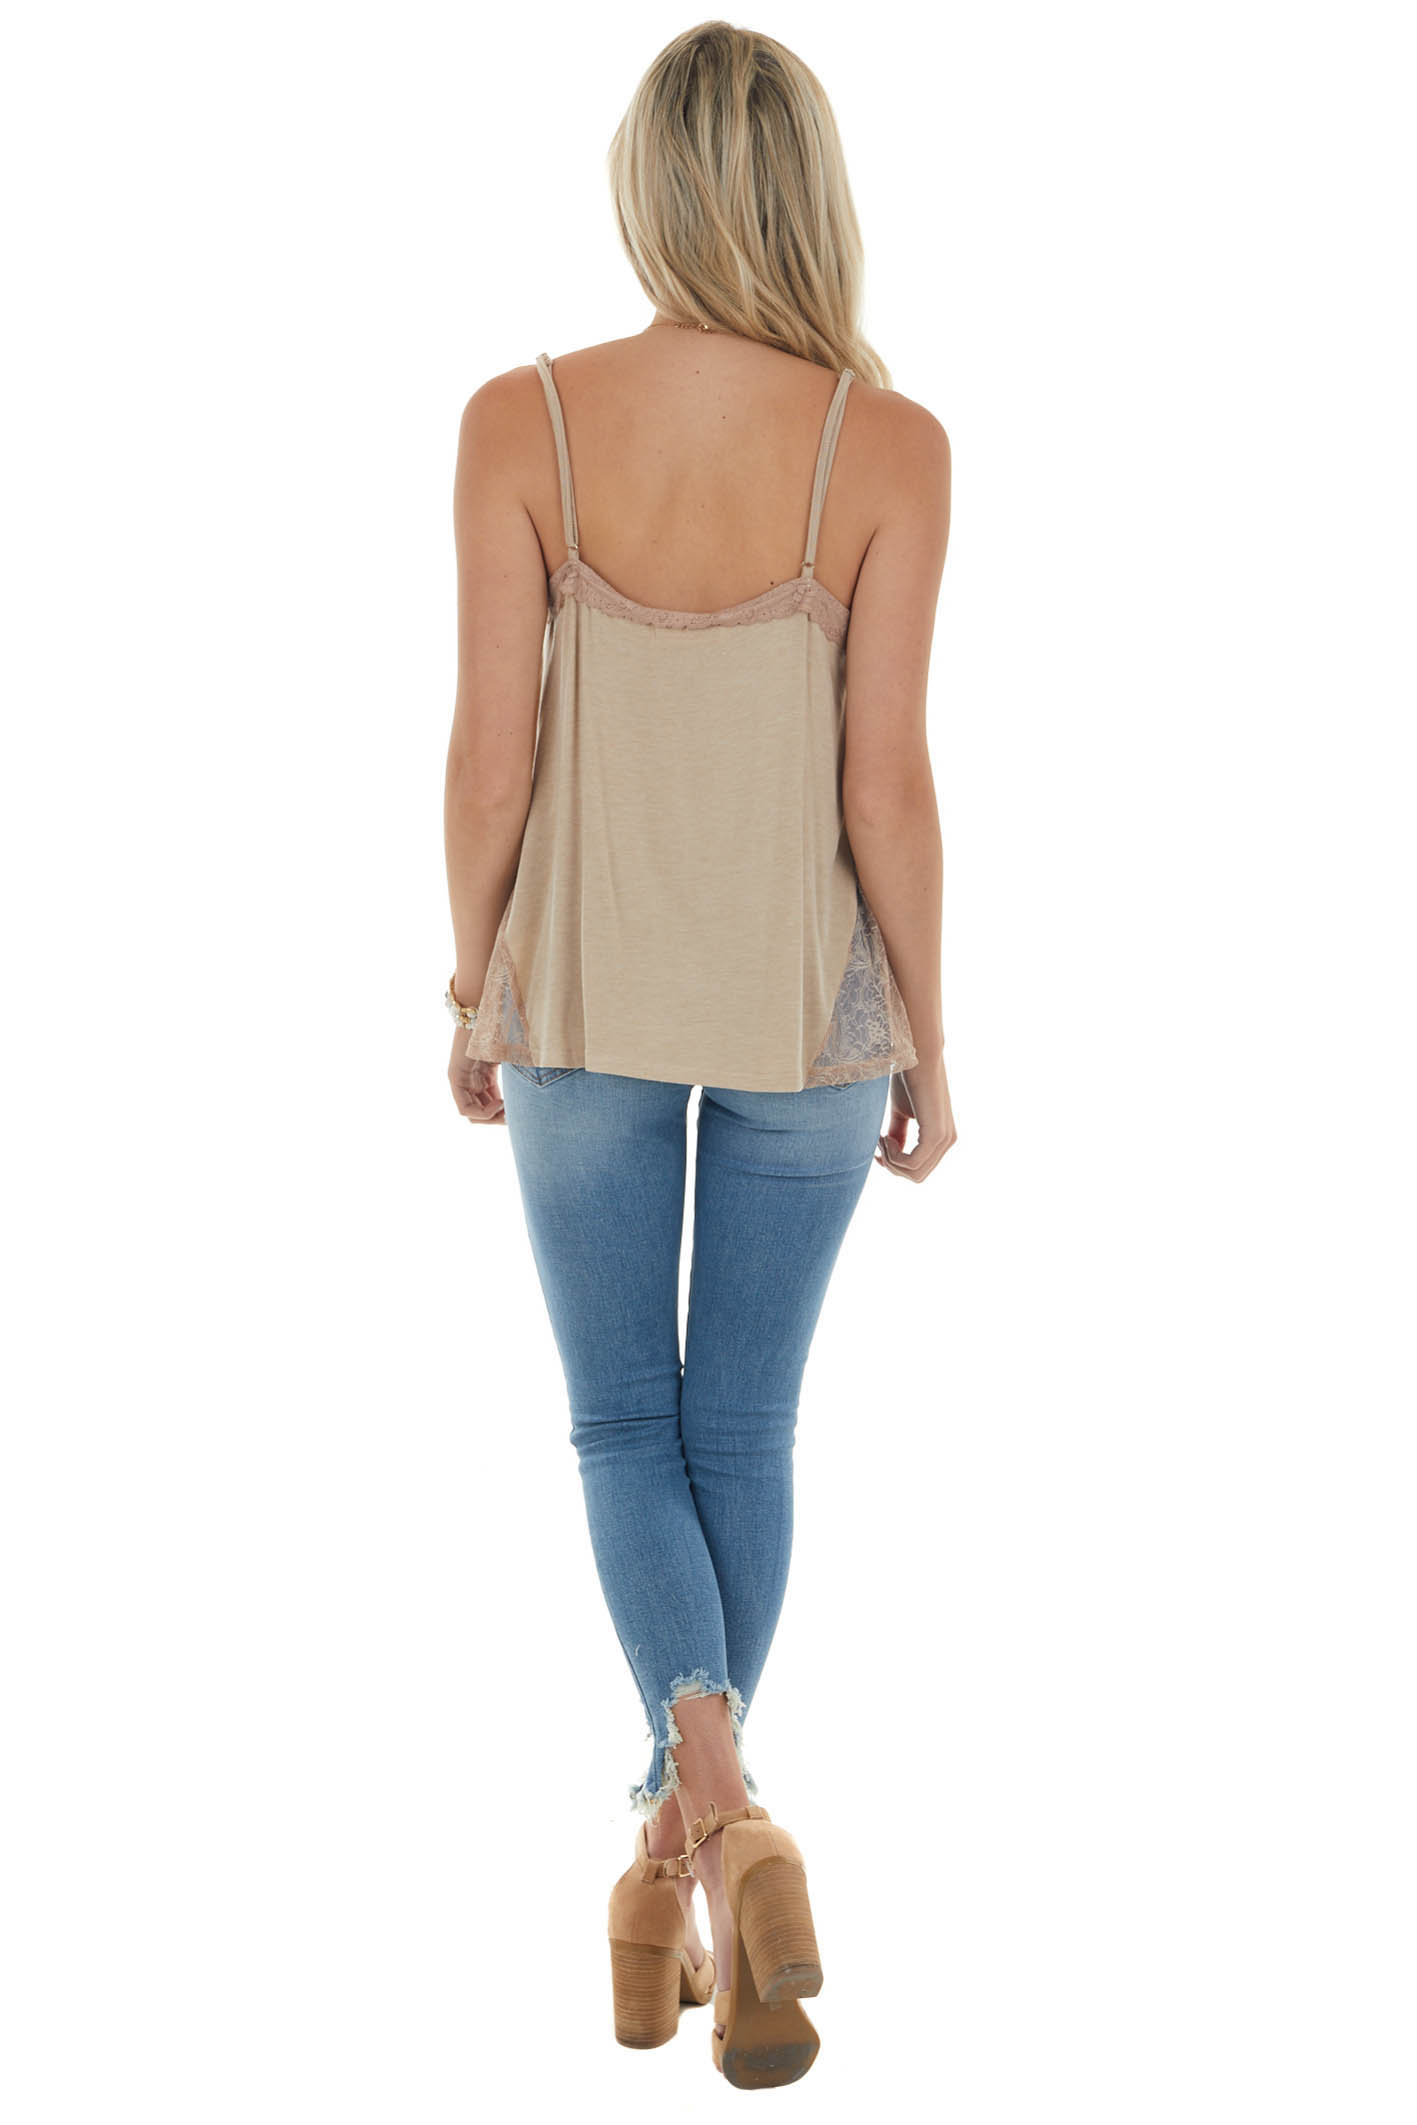 Oatmeal Pleated Tank Top with Lace Details